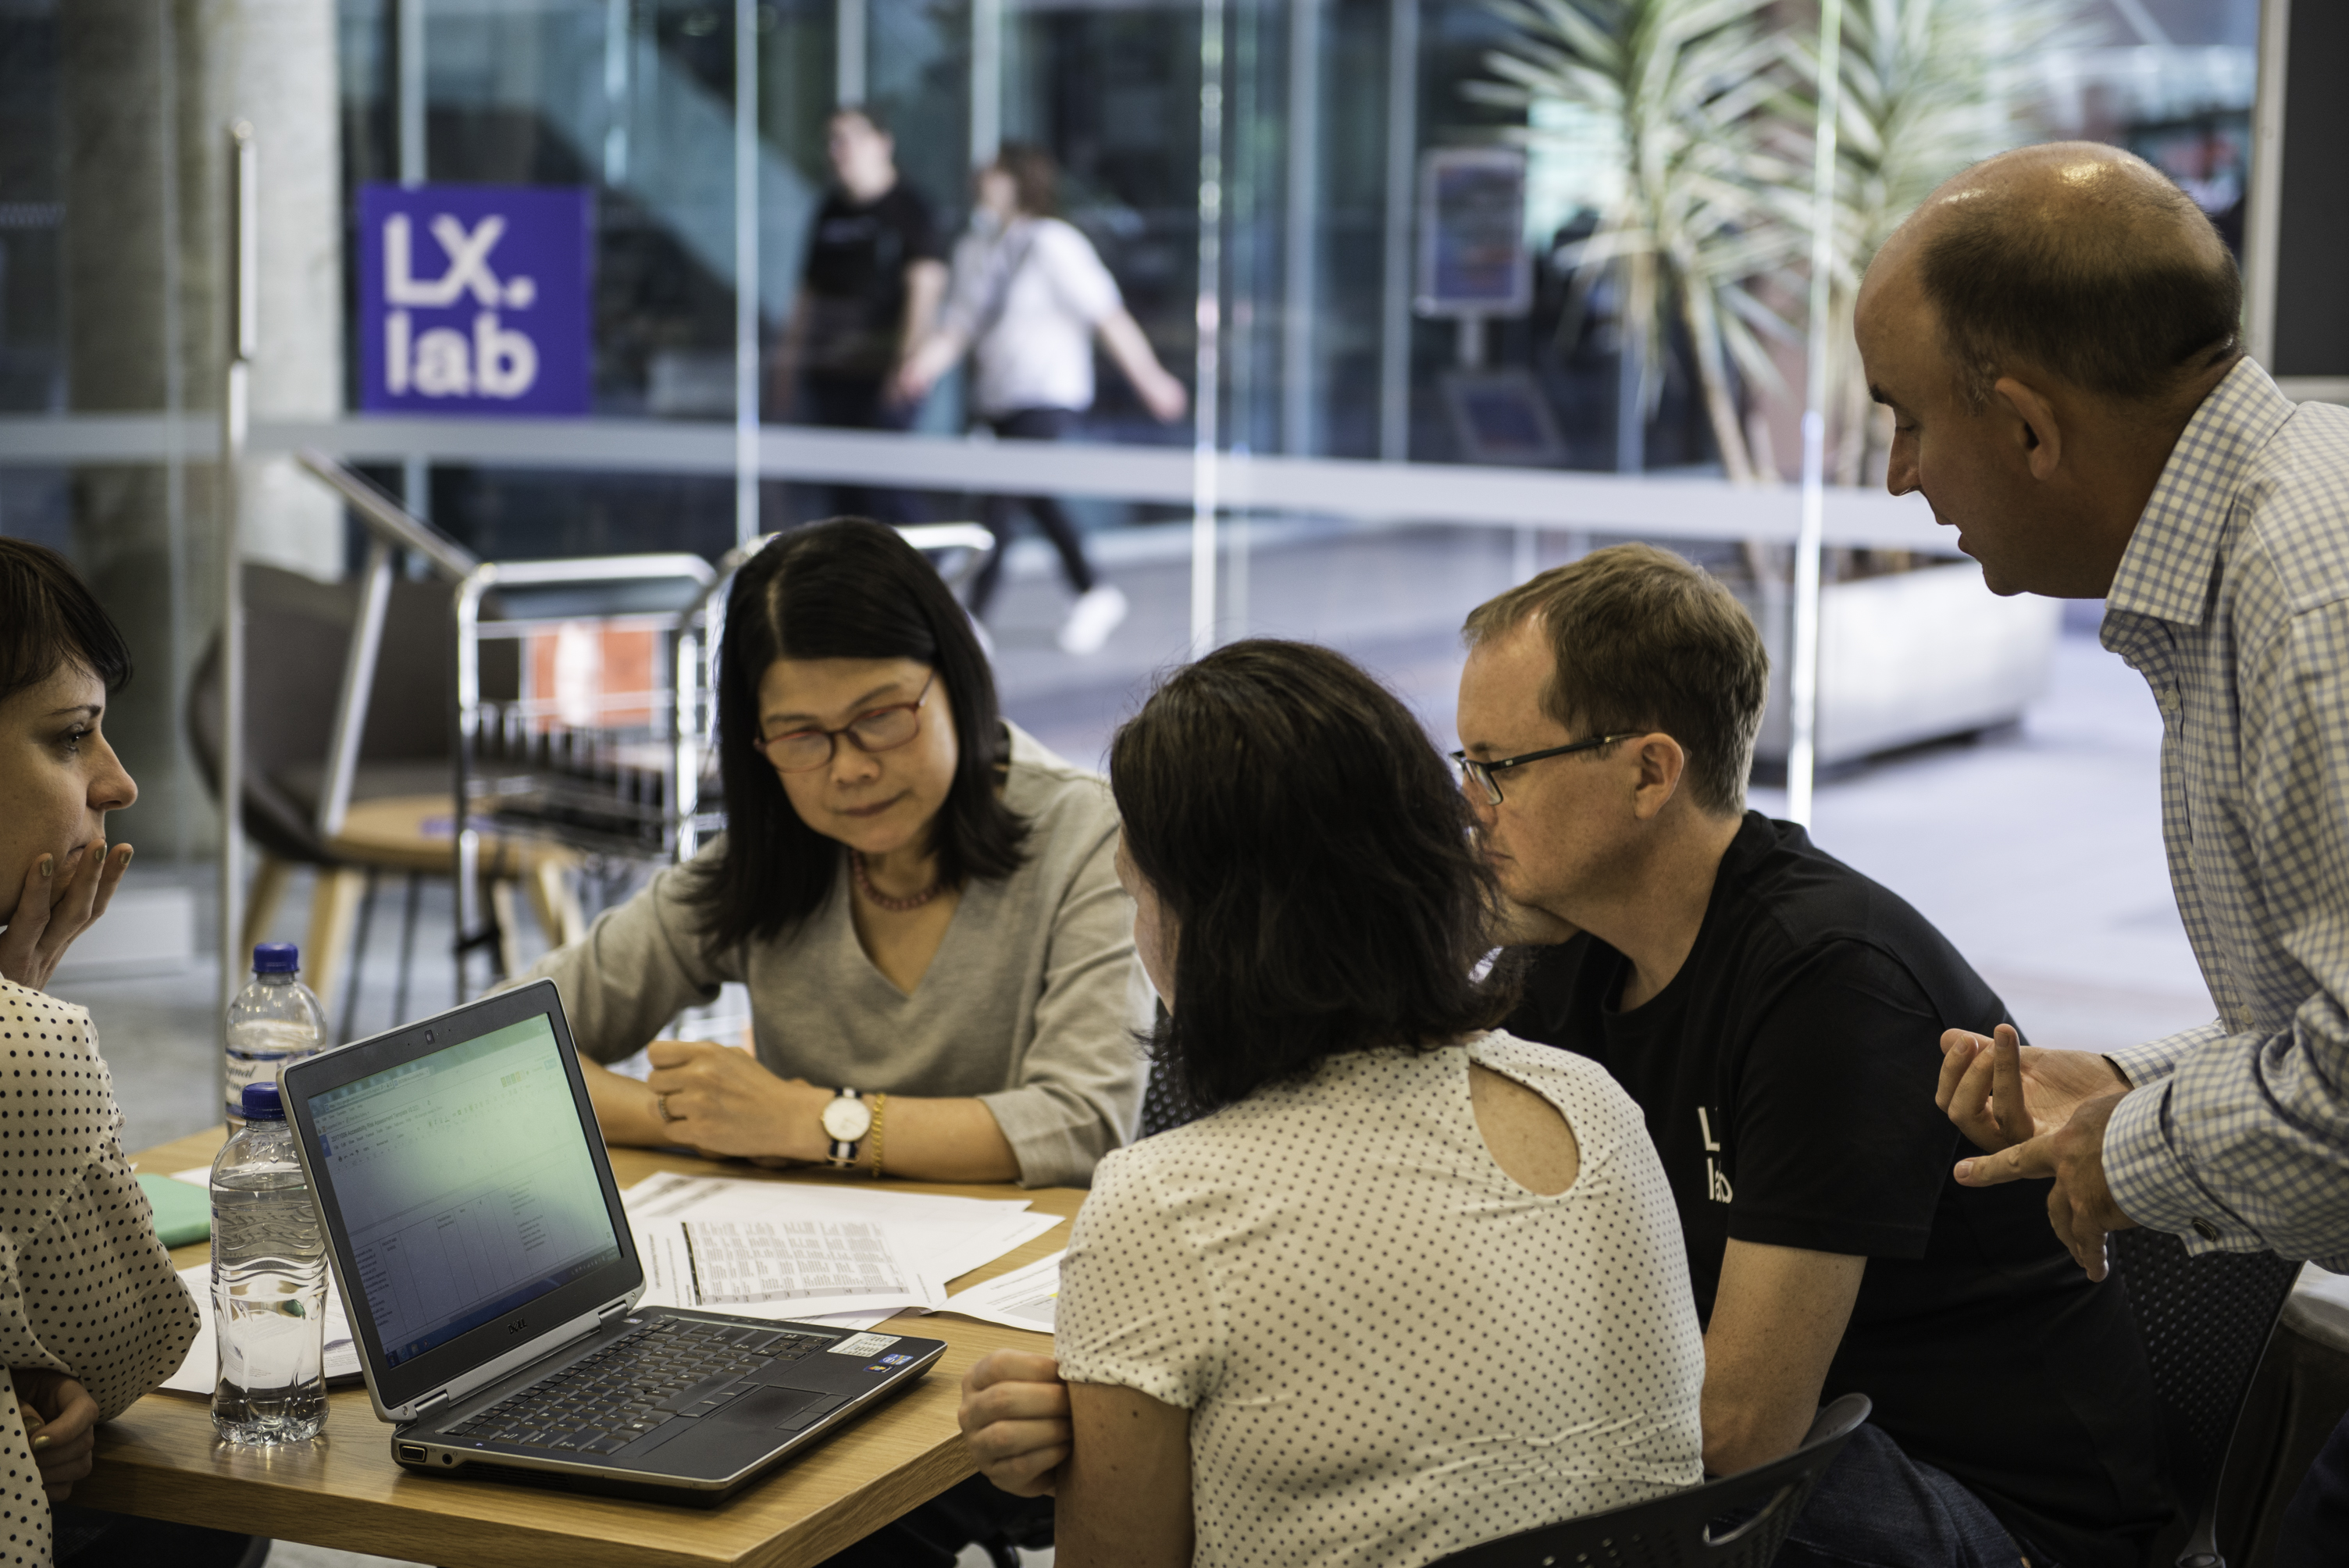 Learning Technology Showcases for New Casual Academics